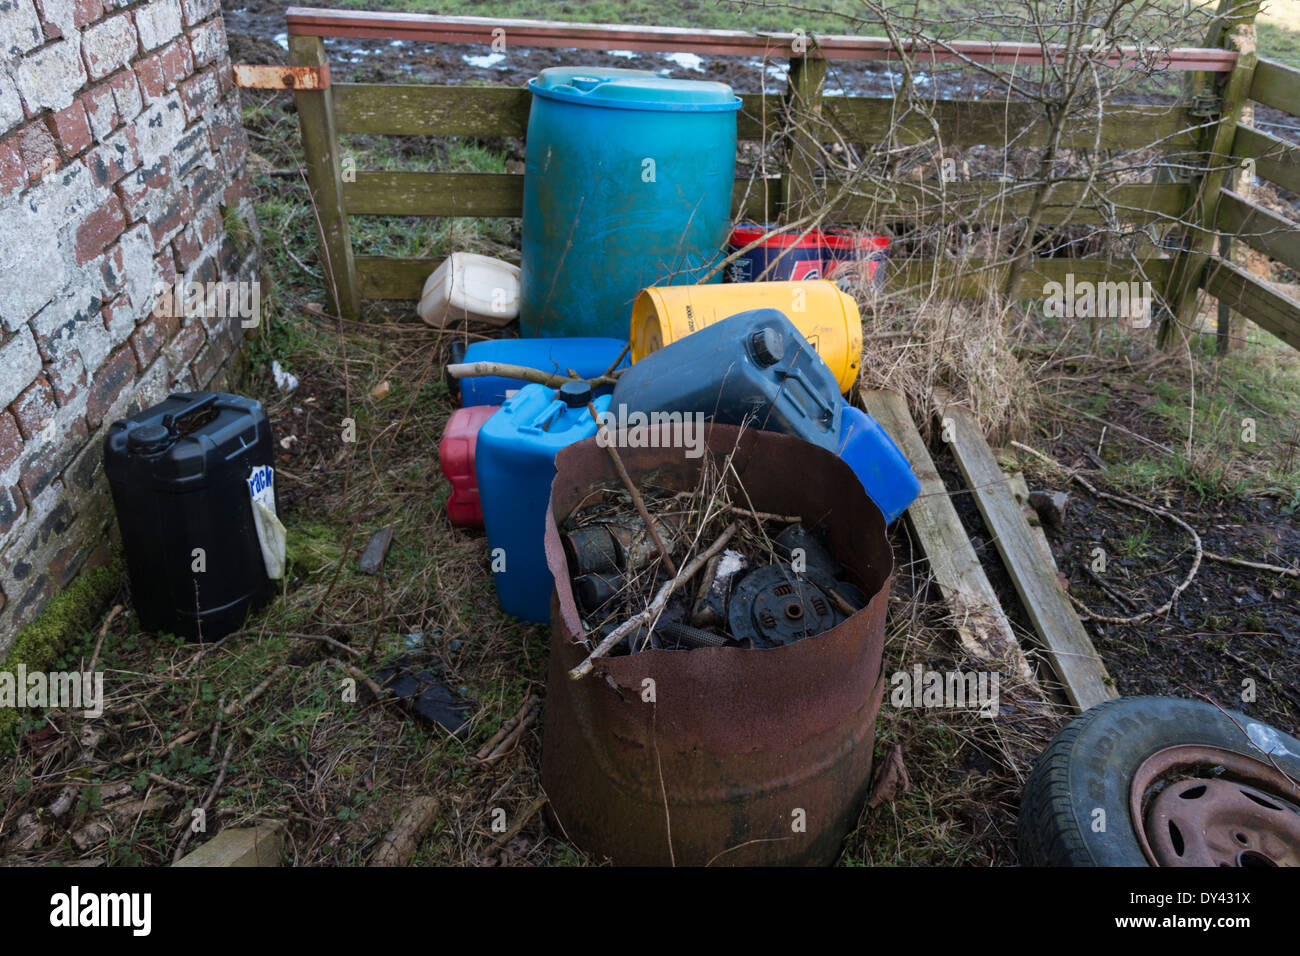 Discarded waste in the countryside. - Stock Image